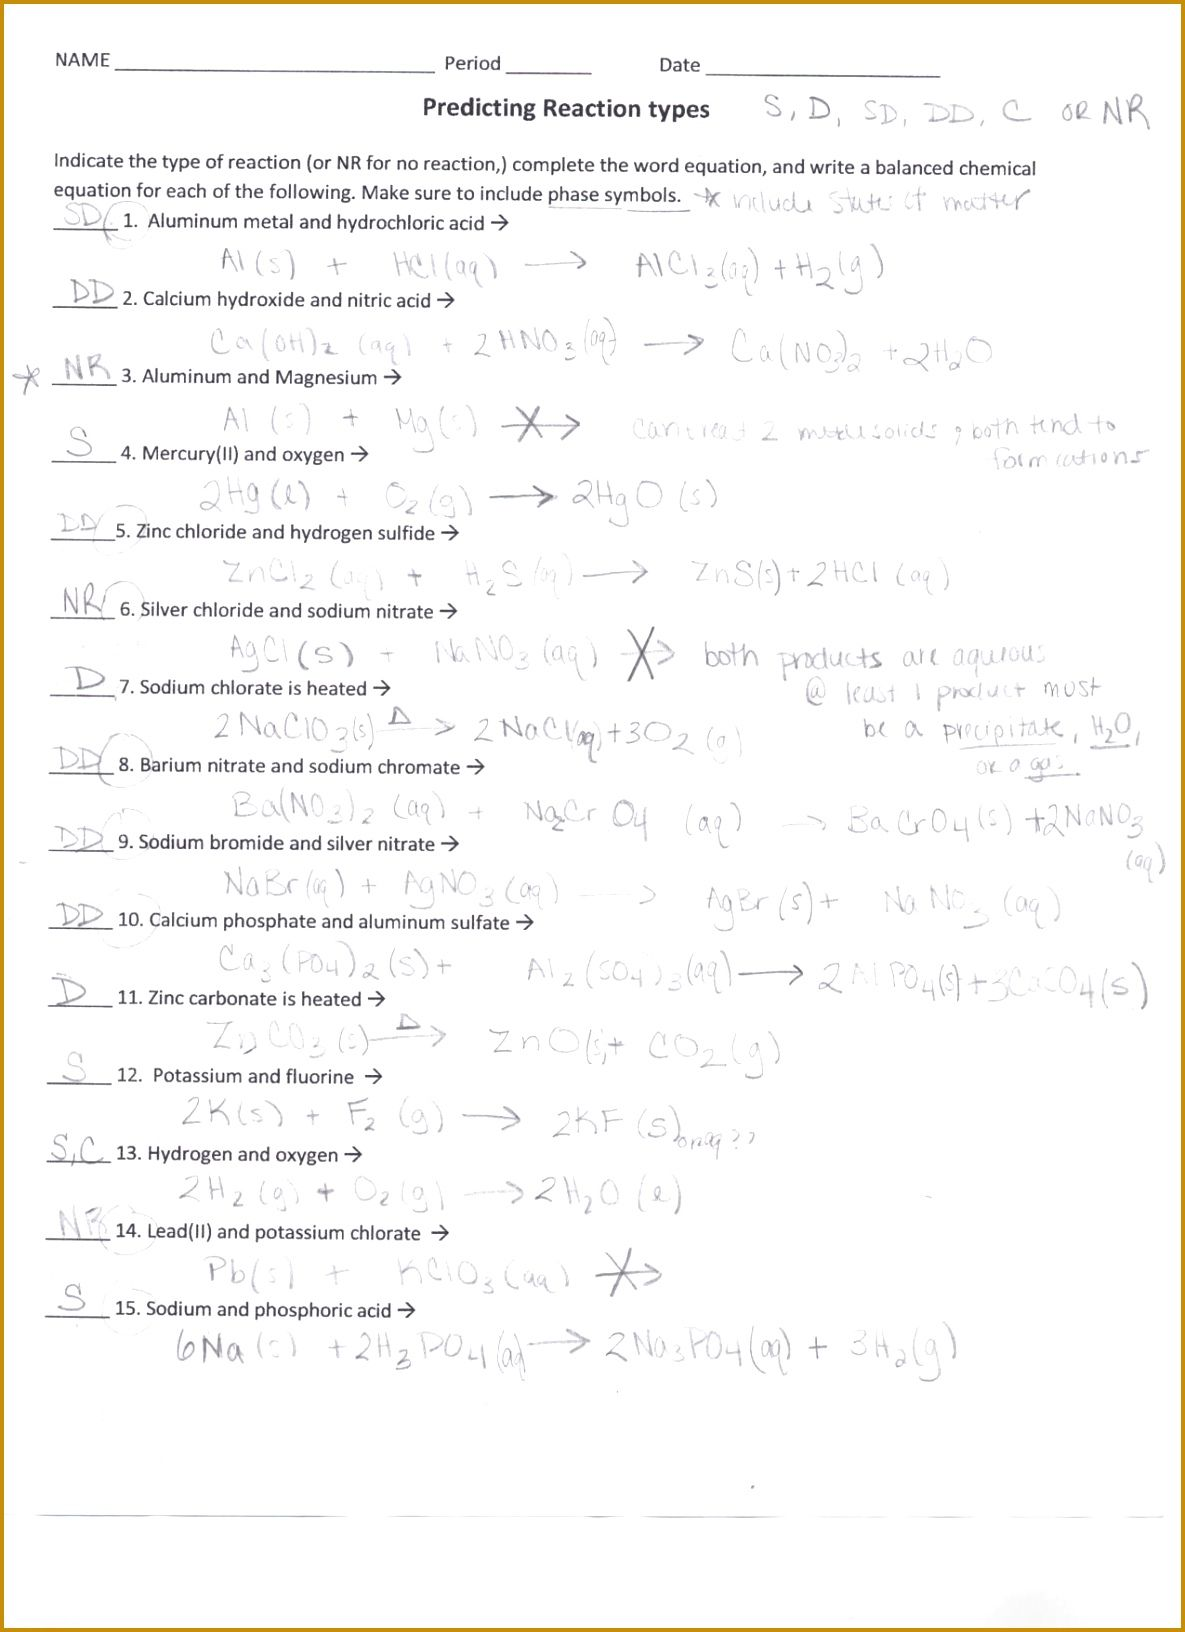 Nuclear Decay Worksheet 2 Answer Key